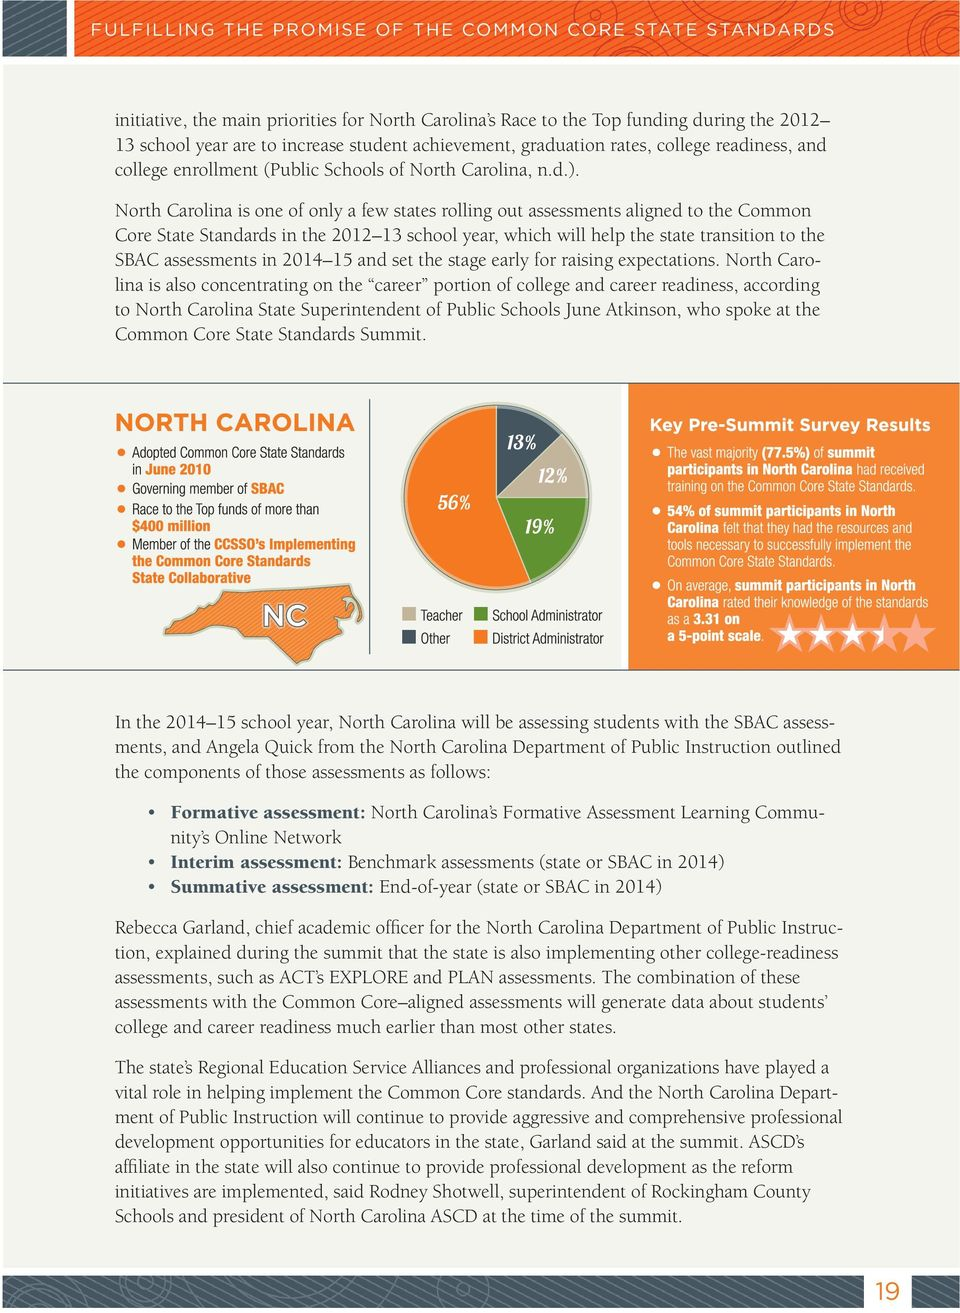 North Carolina is one of only a few states rolling out assessments aligned to the Common Core State Standards in the 2012 13 school year, which will help the state transition to the SBAC assessments